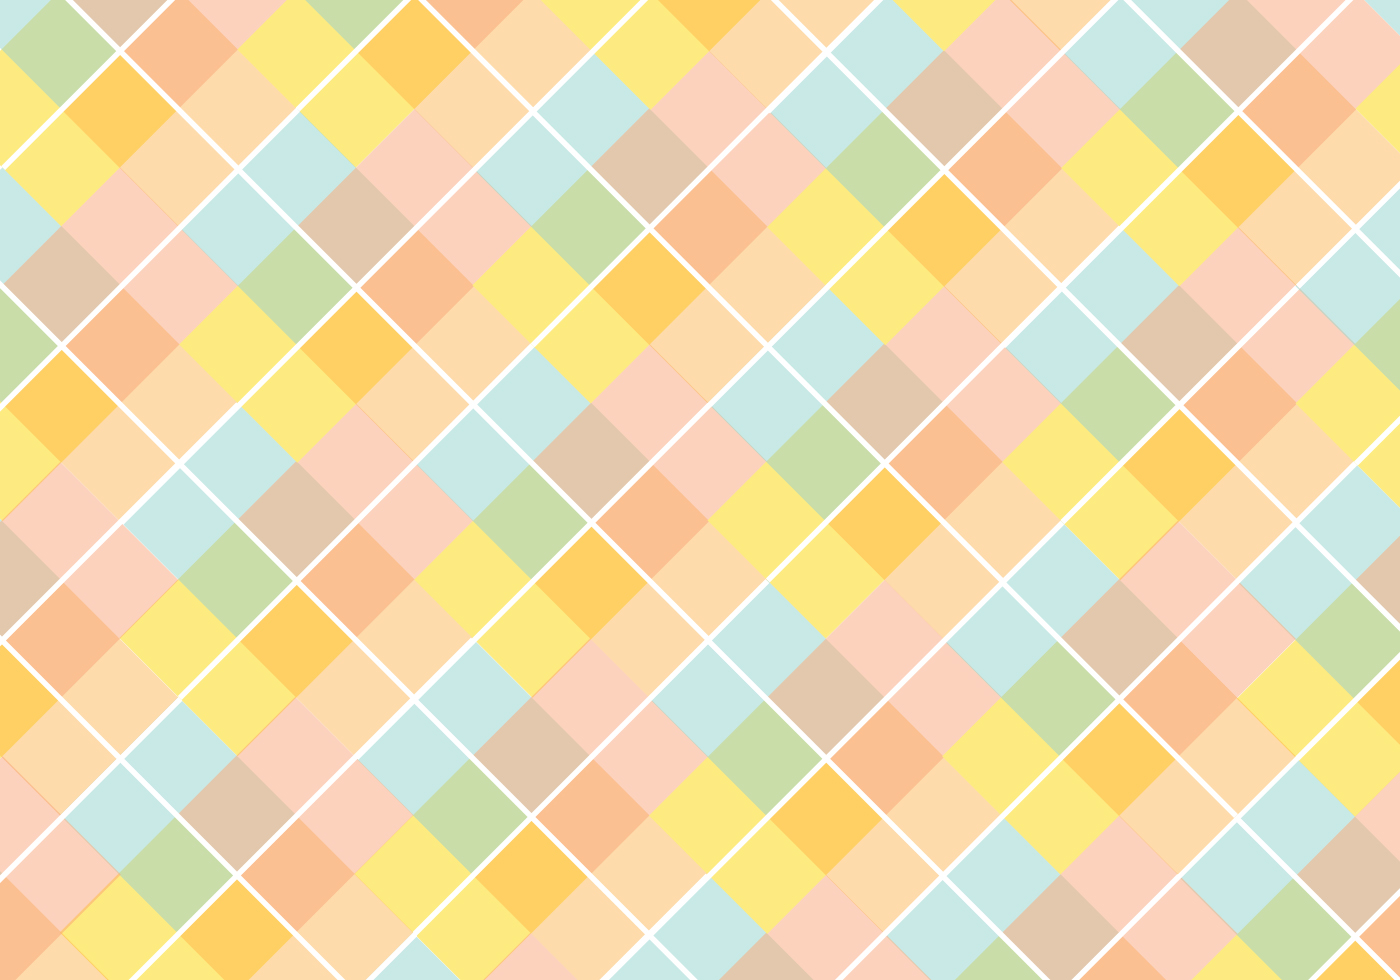 Cute Tribal Patterns Wallpaper Pastel Diamond Pattern Vector Download Free Vector Art